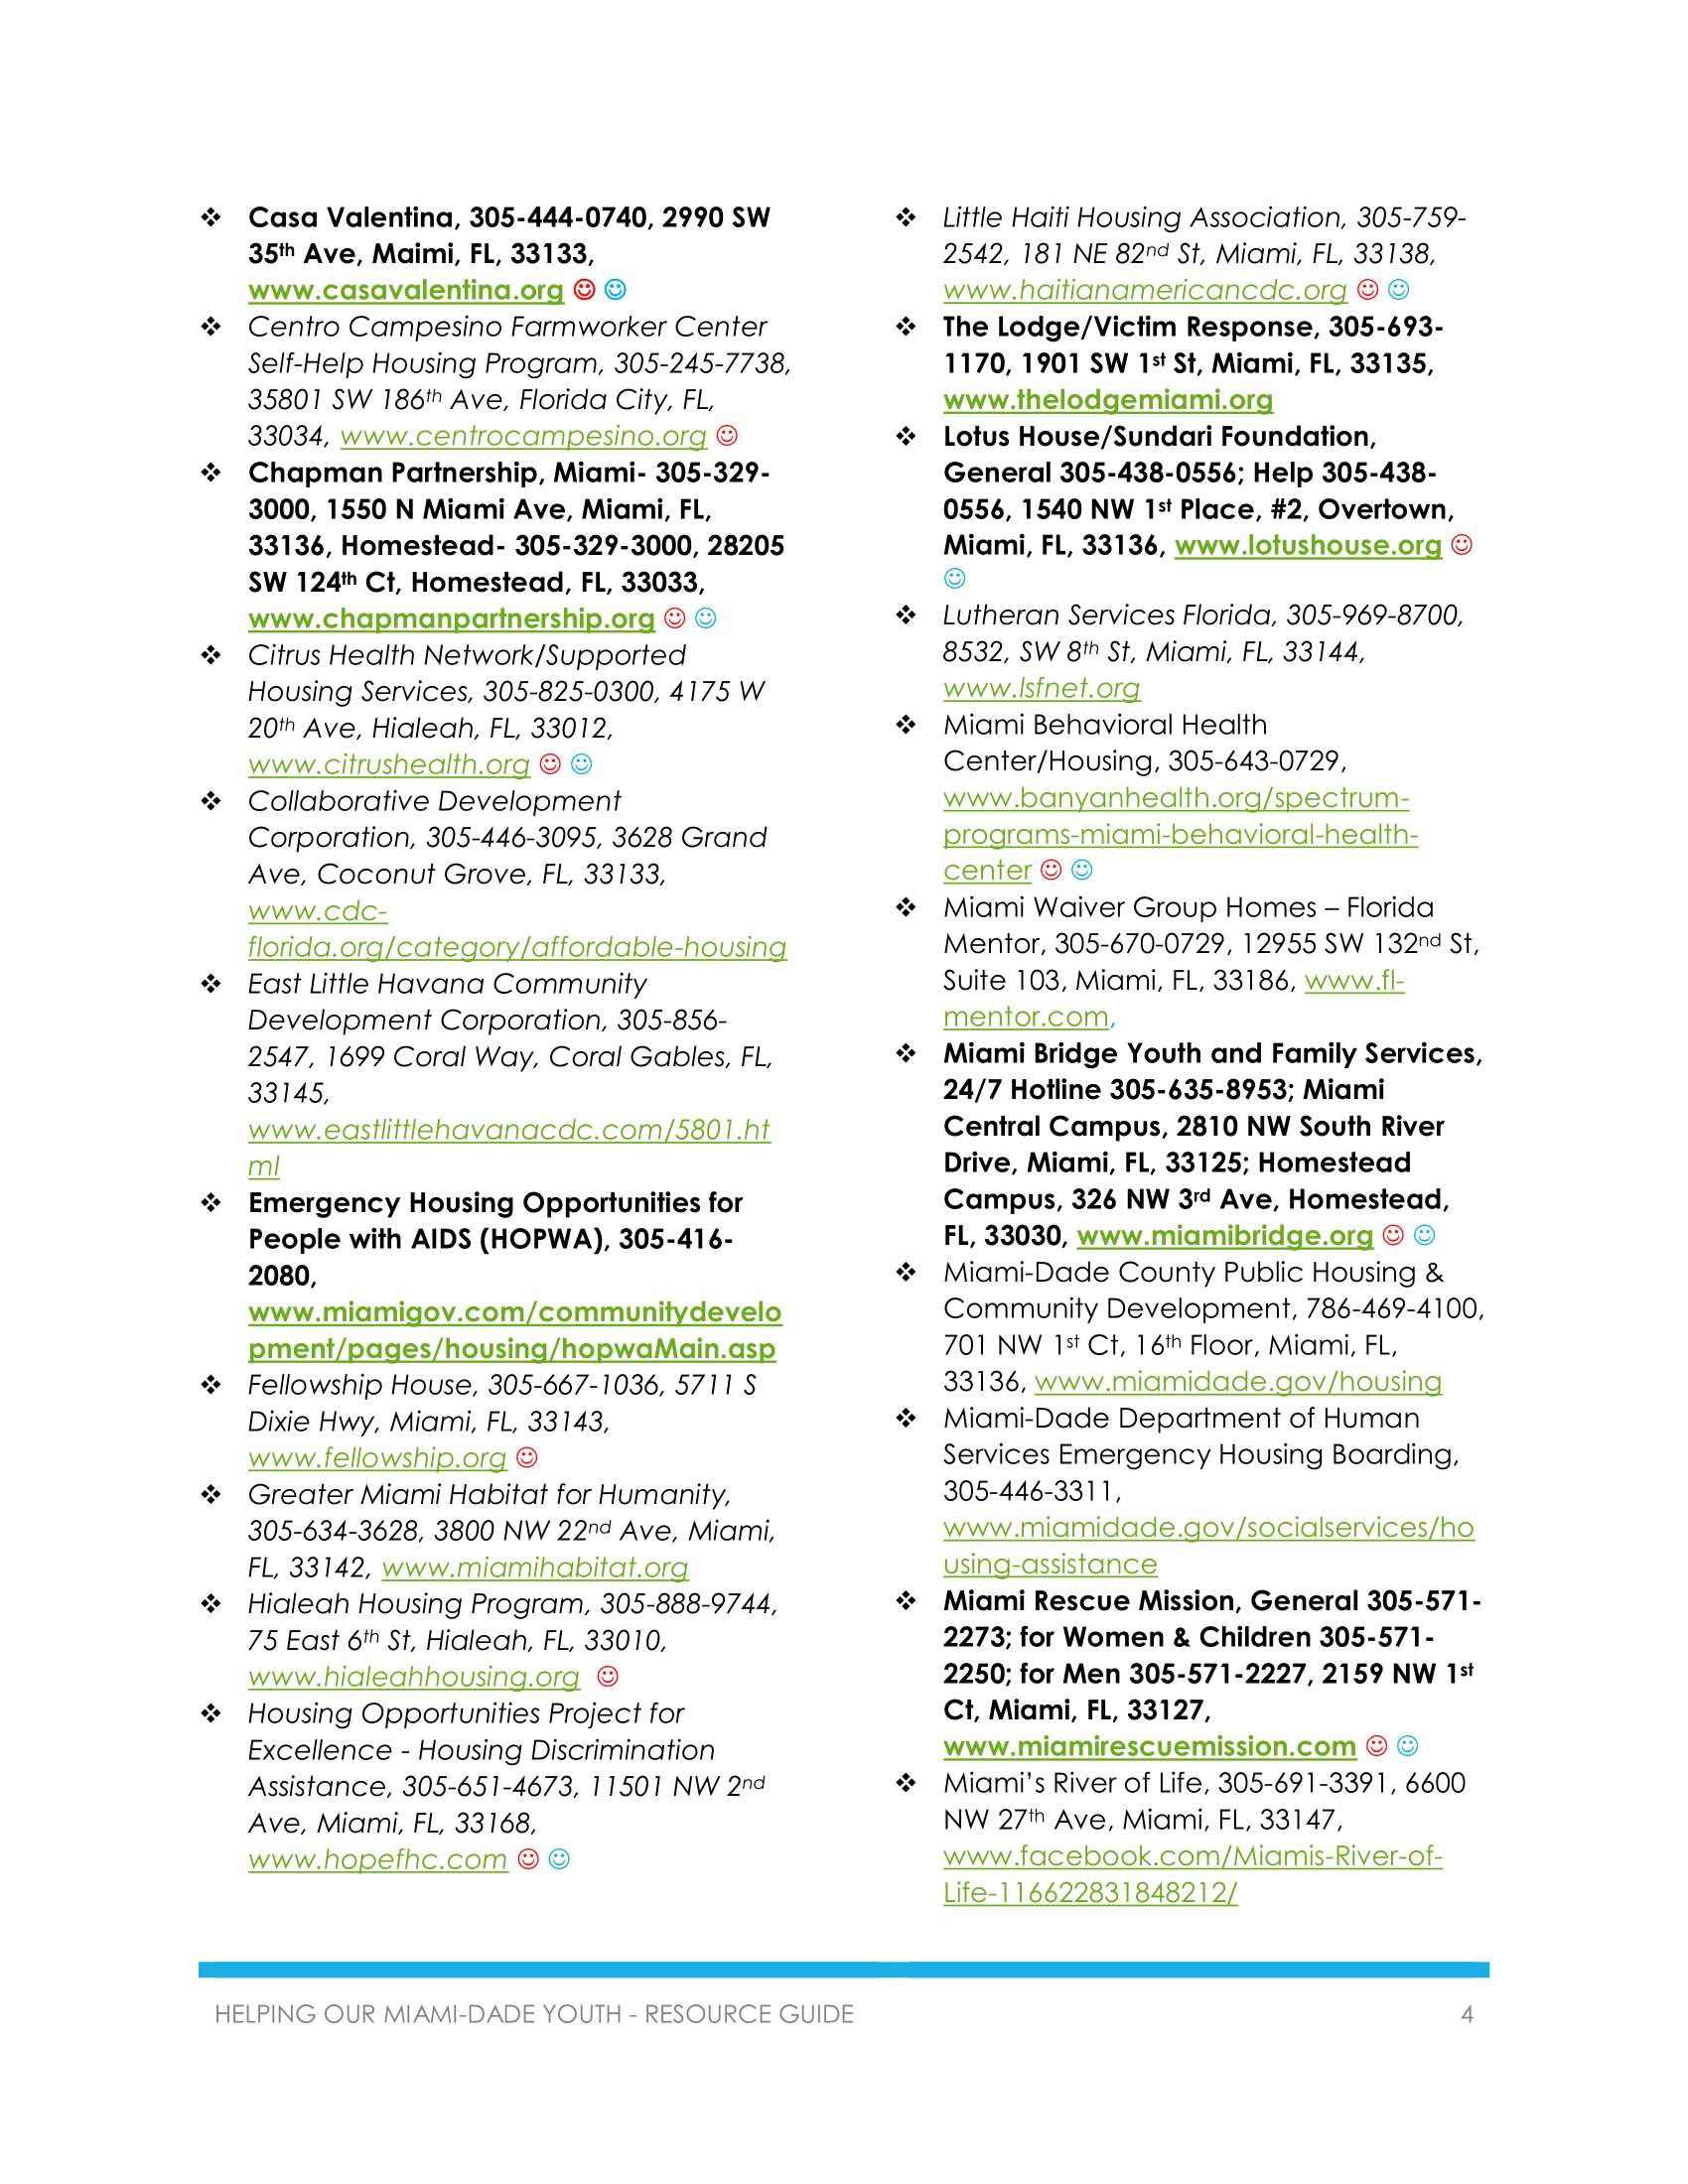 Youth Resource Guide - May 2018-09.png